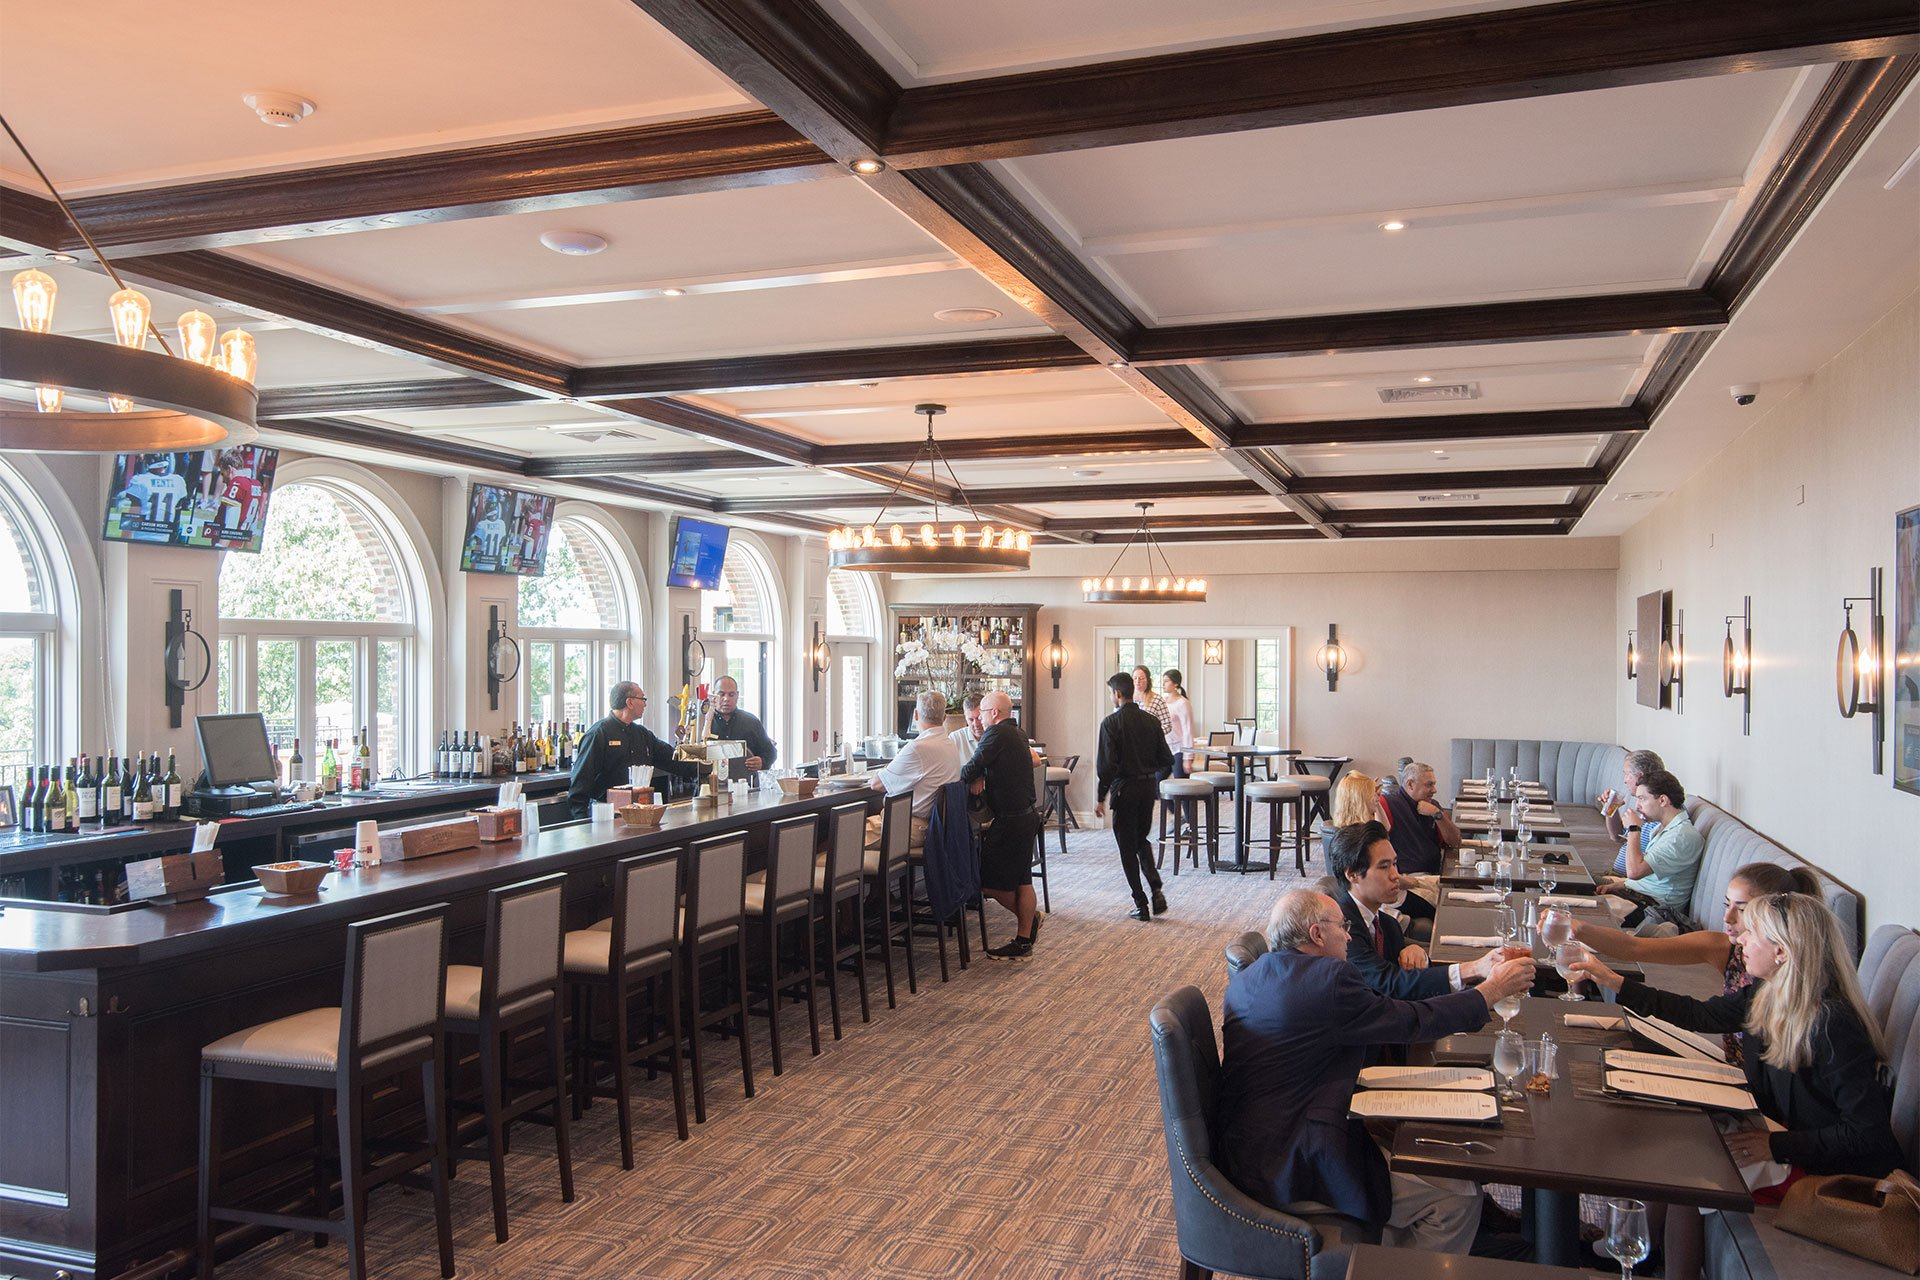 murphy-brothers-contracting-commercial-ardsley-country-club-interior-bar-dining